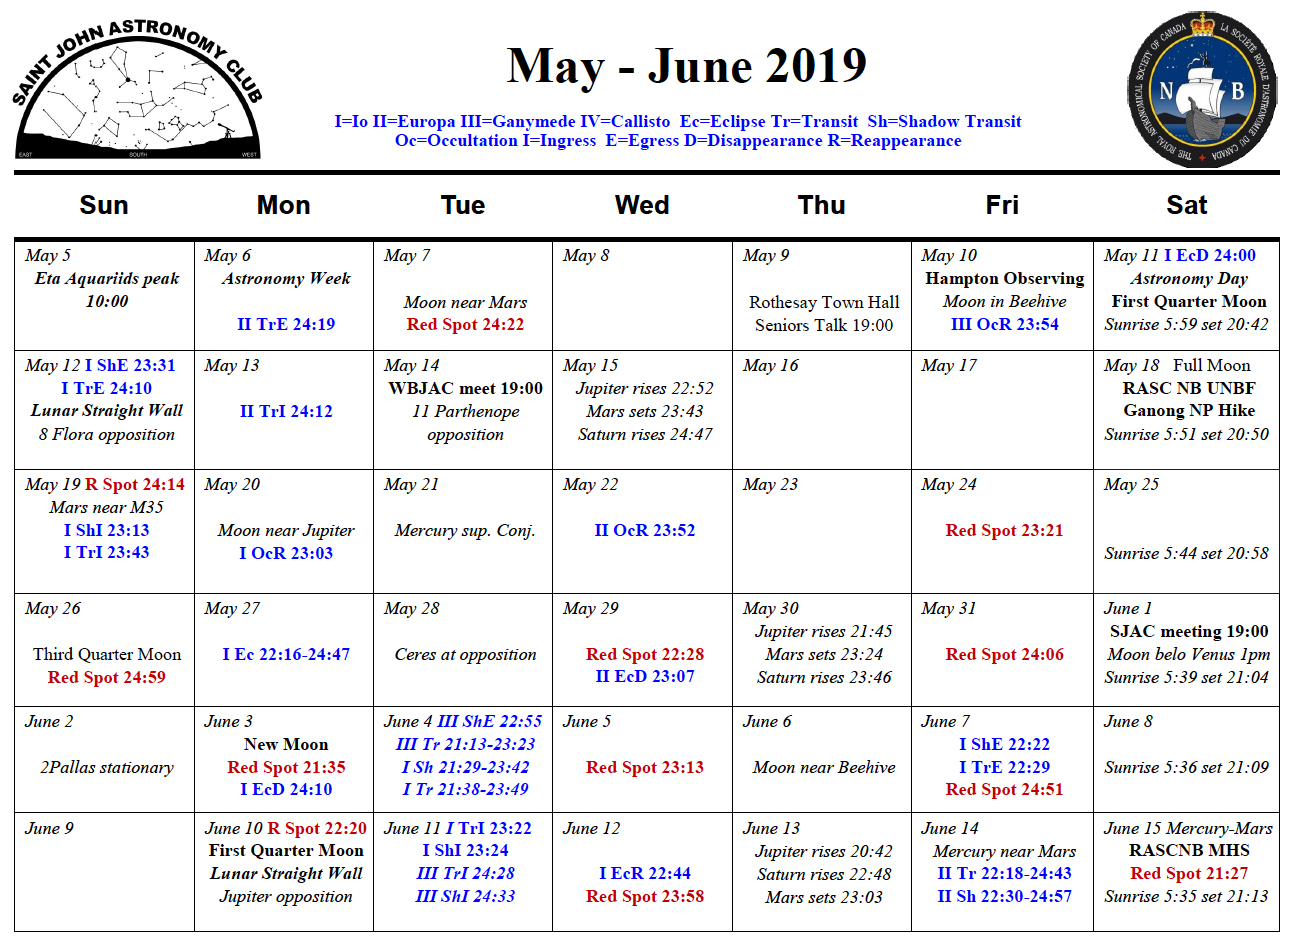 Calendar for the Saint John Astronomy Club for May-June 2019